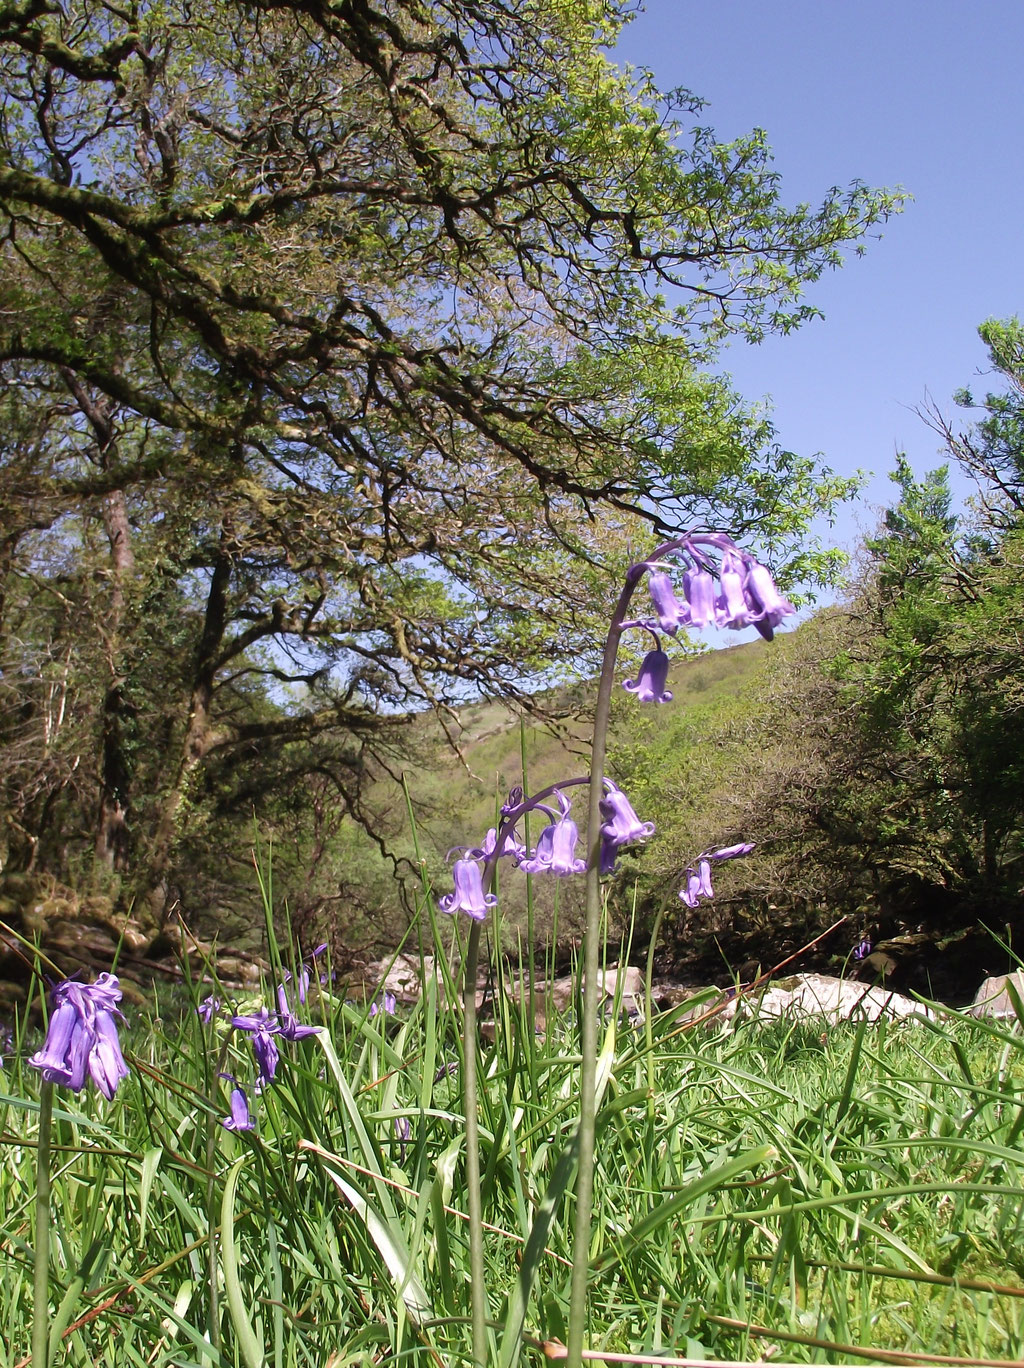 Bluebells, Dartmoor, Devon, England, UK